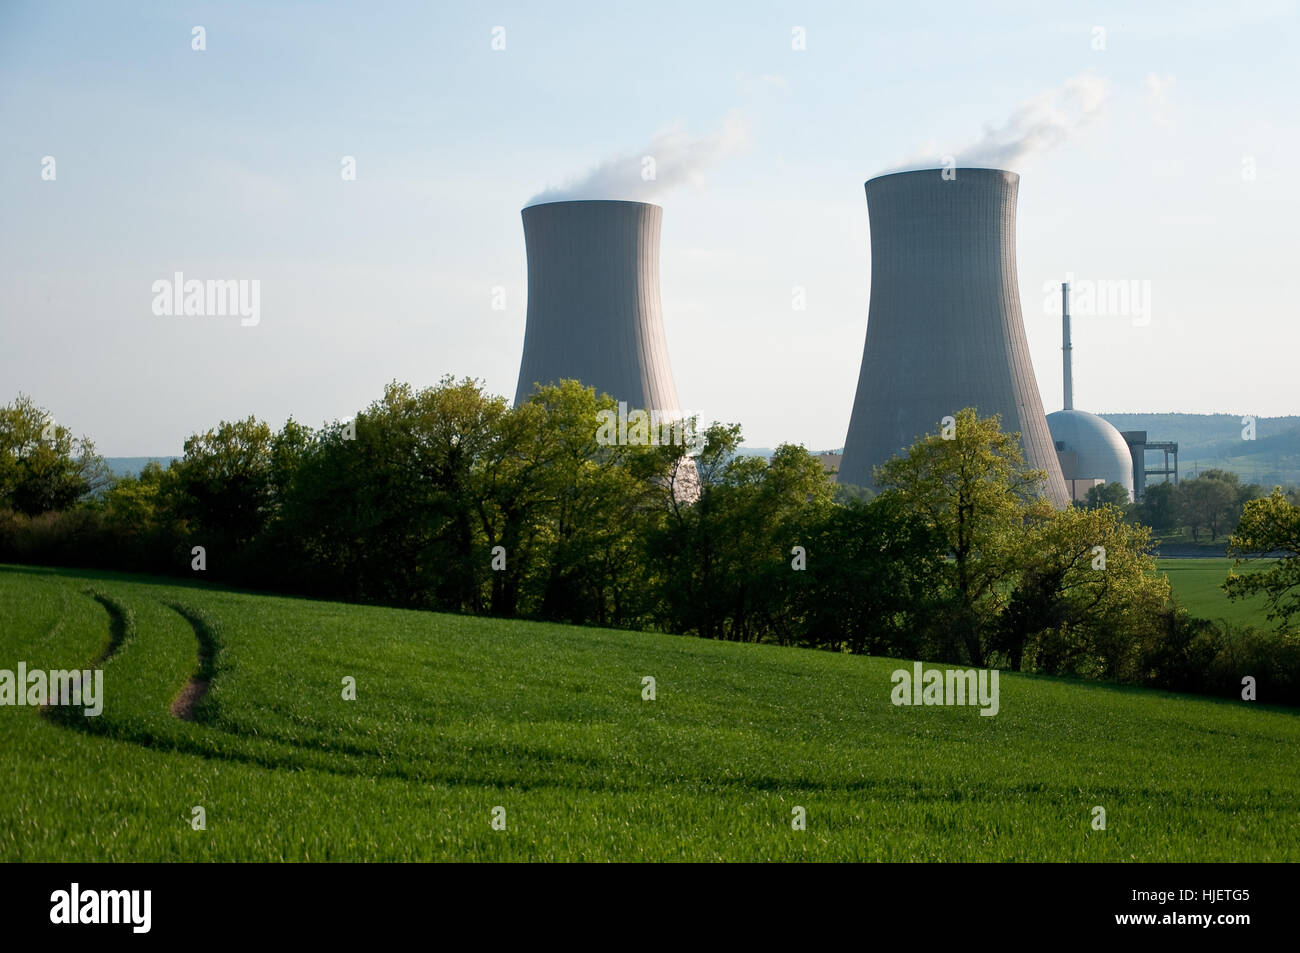 power station, cooling tower, agriculture, farming, evening, acre, nuclear - Stock Image